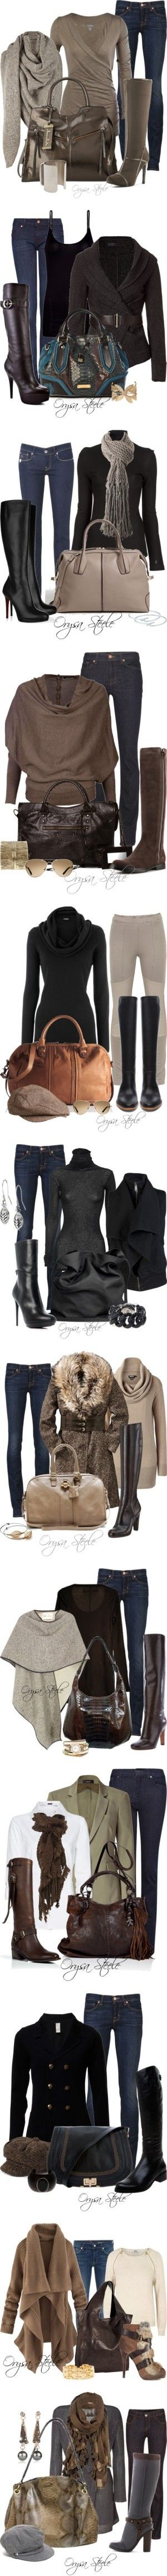 Beautiful Boots by orysa on Polyvore featuring J Brand, AllSaints, Chocolate New York, Gomax, Jody Candrian, jbrand, MANGO, Donna Karan, Burberry and GUESS